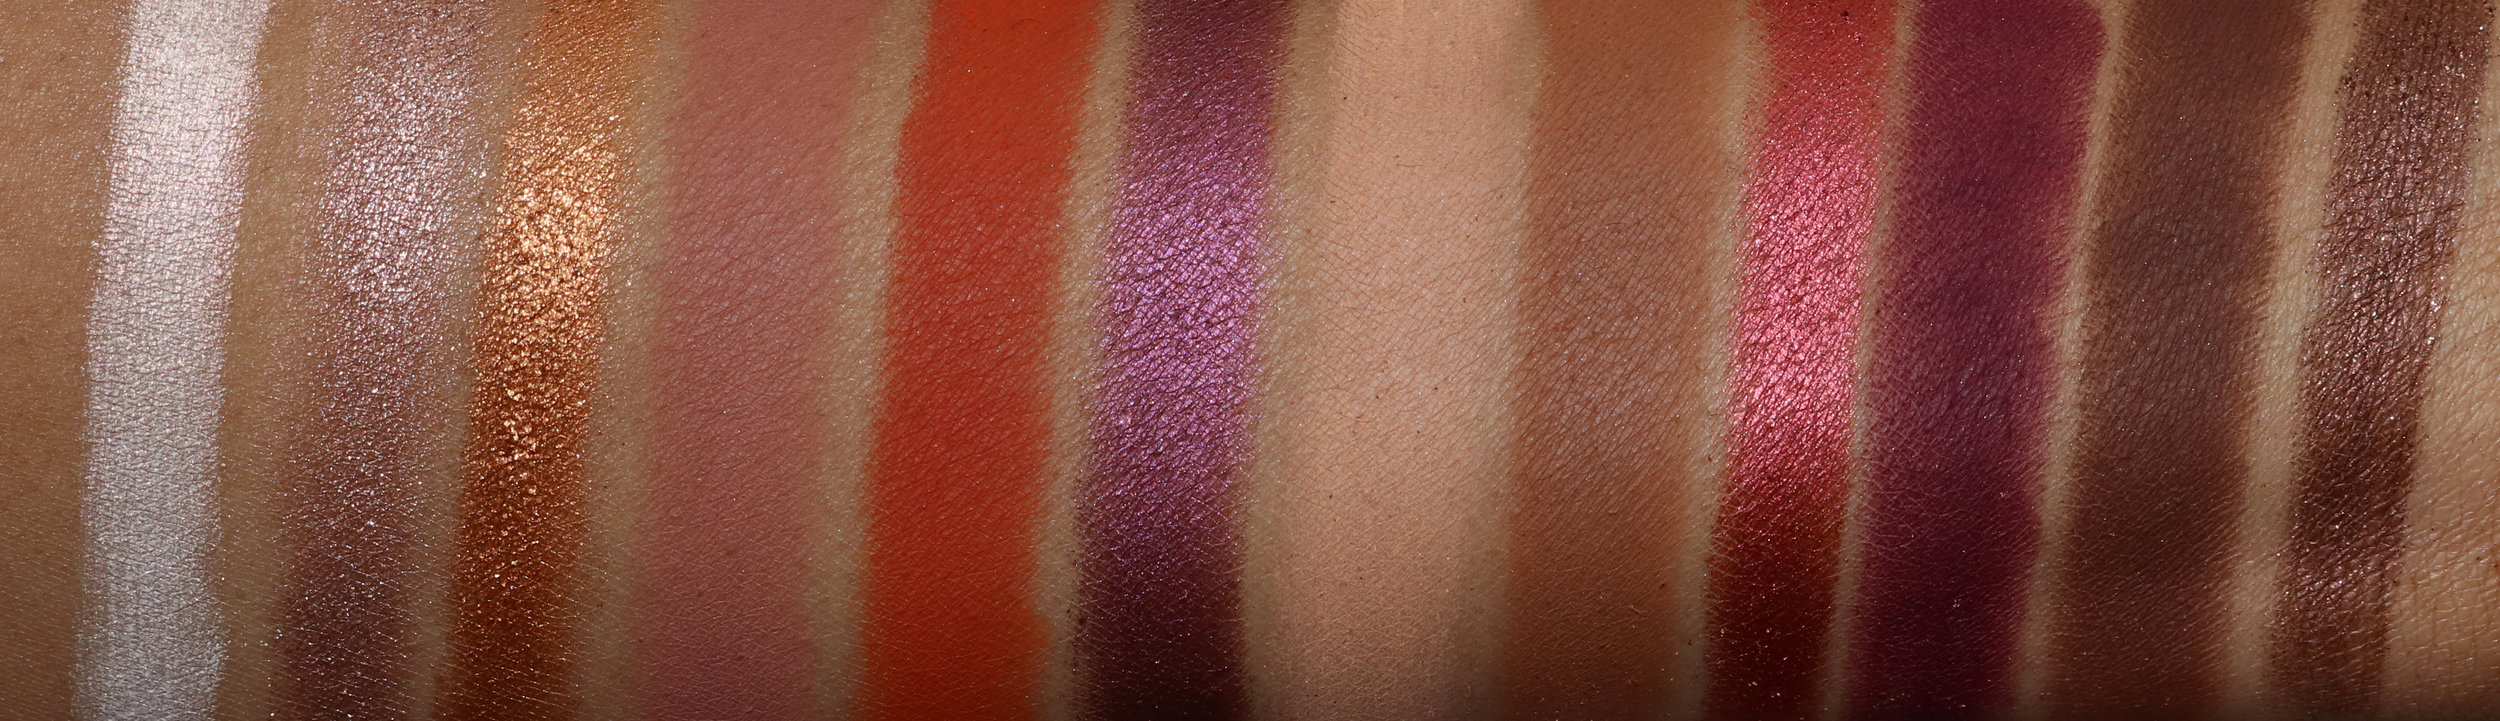 Queen Of Hearts Eyeshadow Palette by Coloured Raine #11